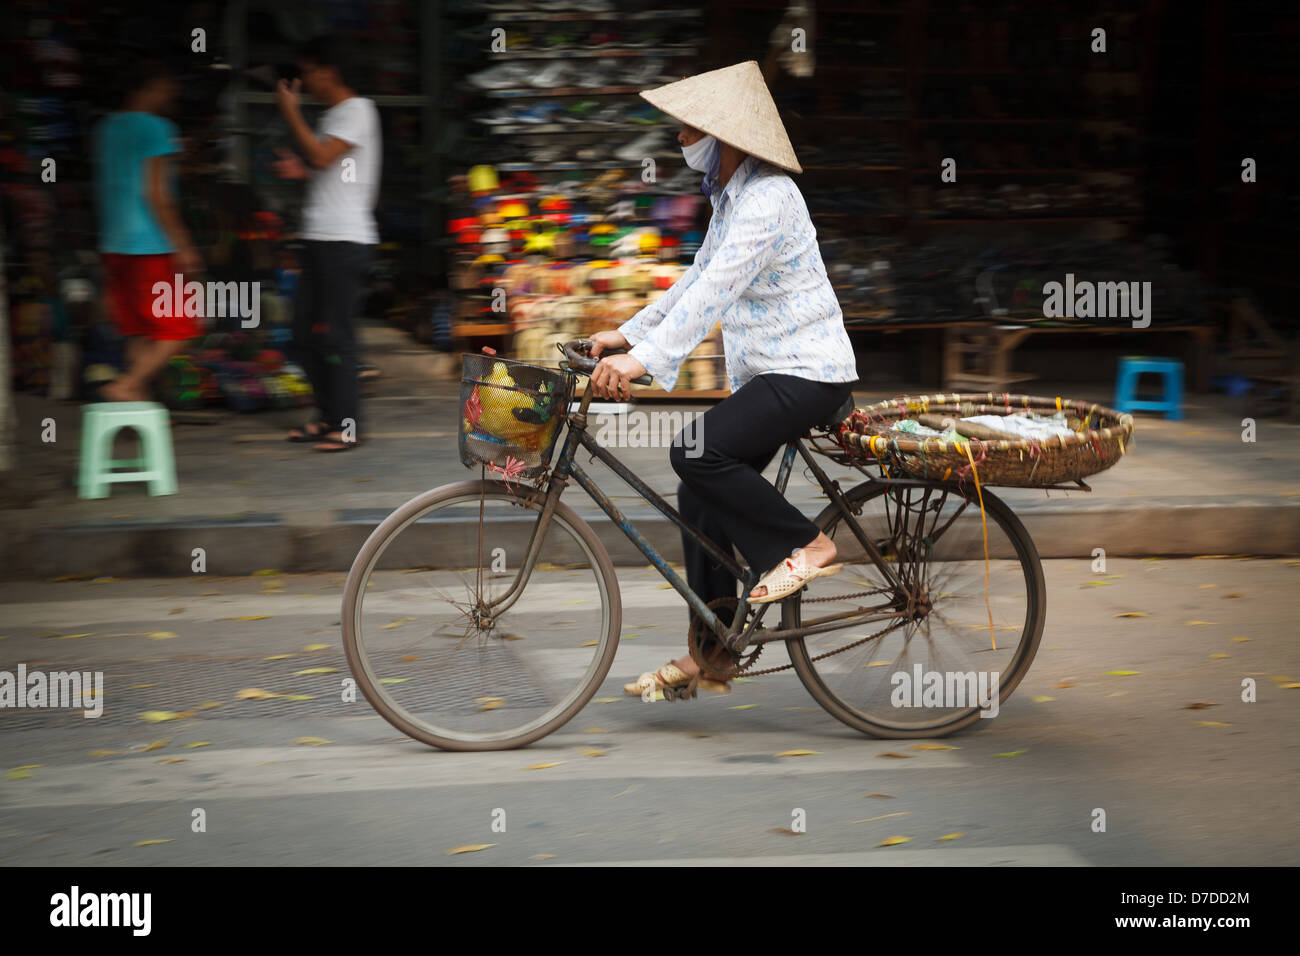 A street vendor on her bicycle in the Old Quarter of Hanoi, Vietnam - Stock Image